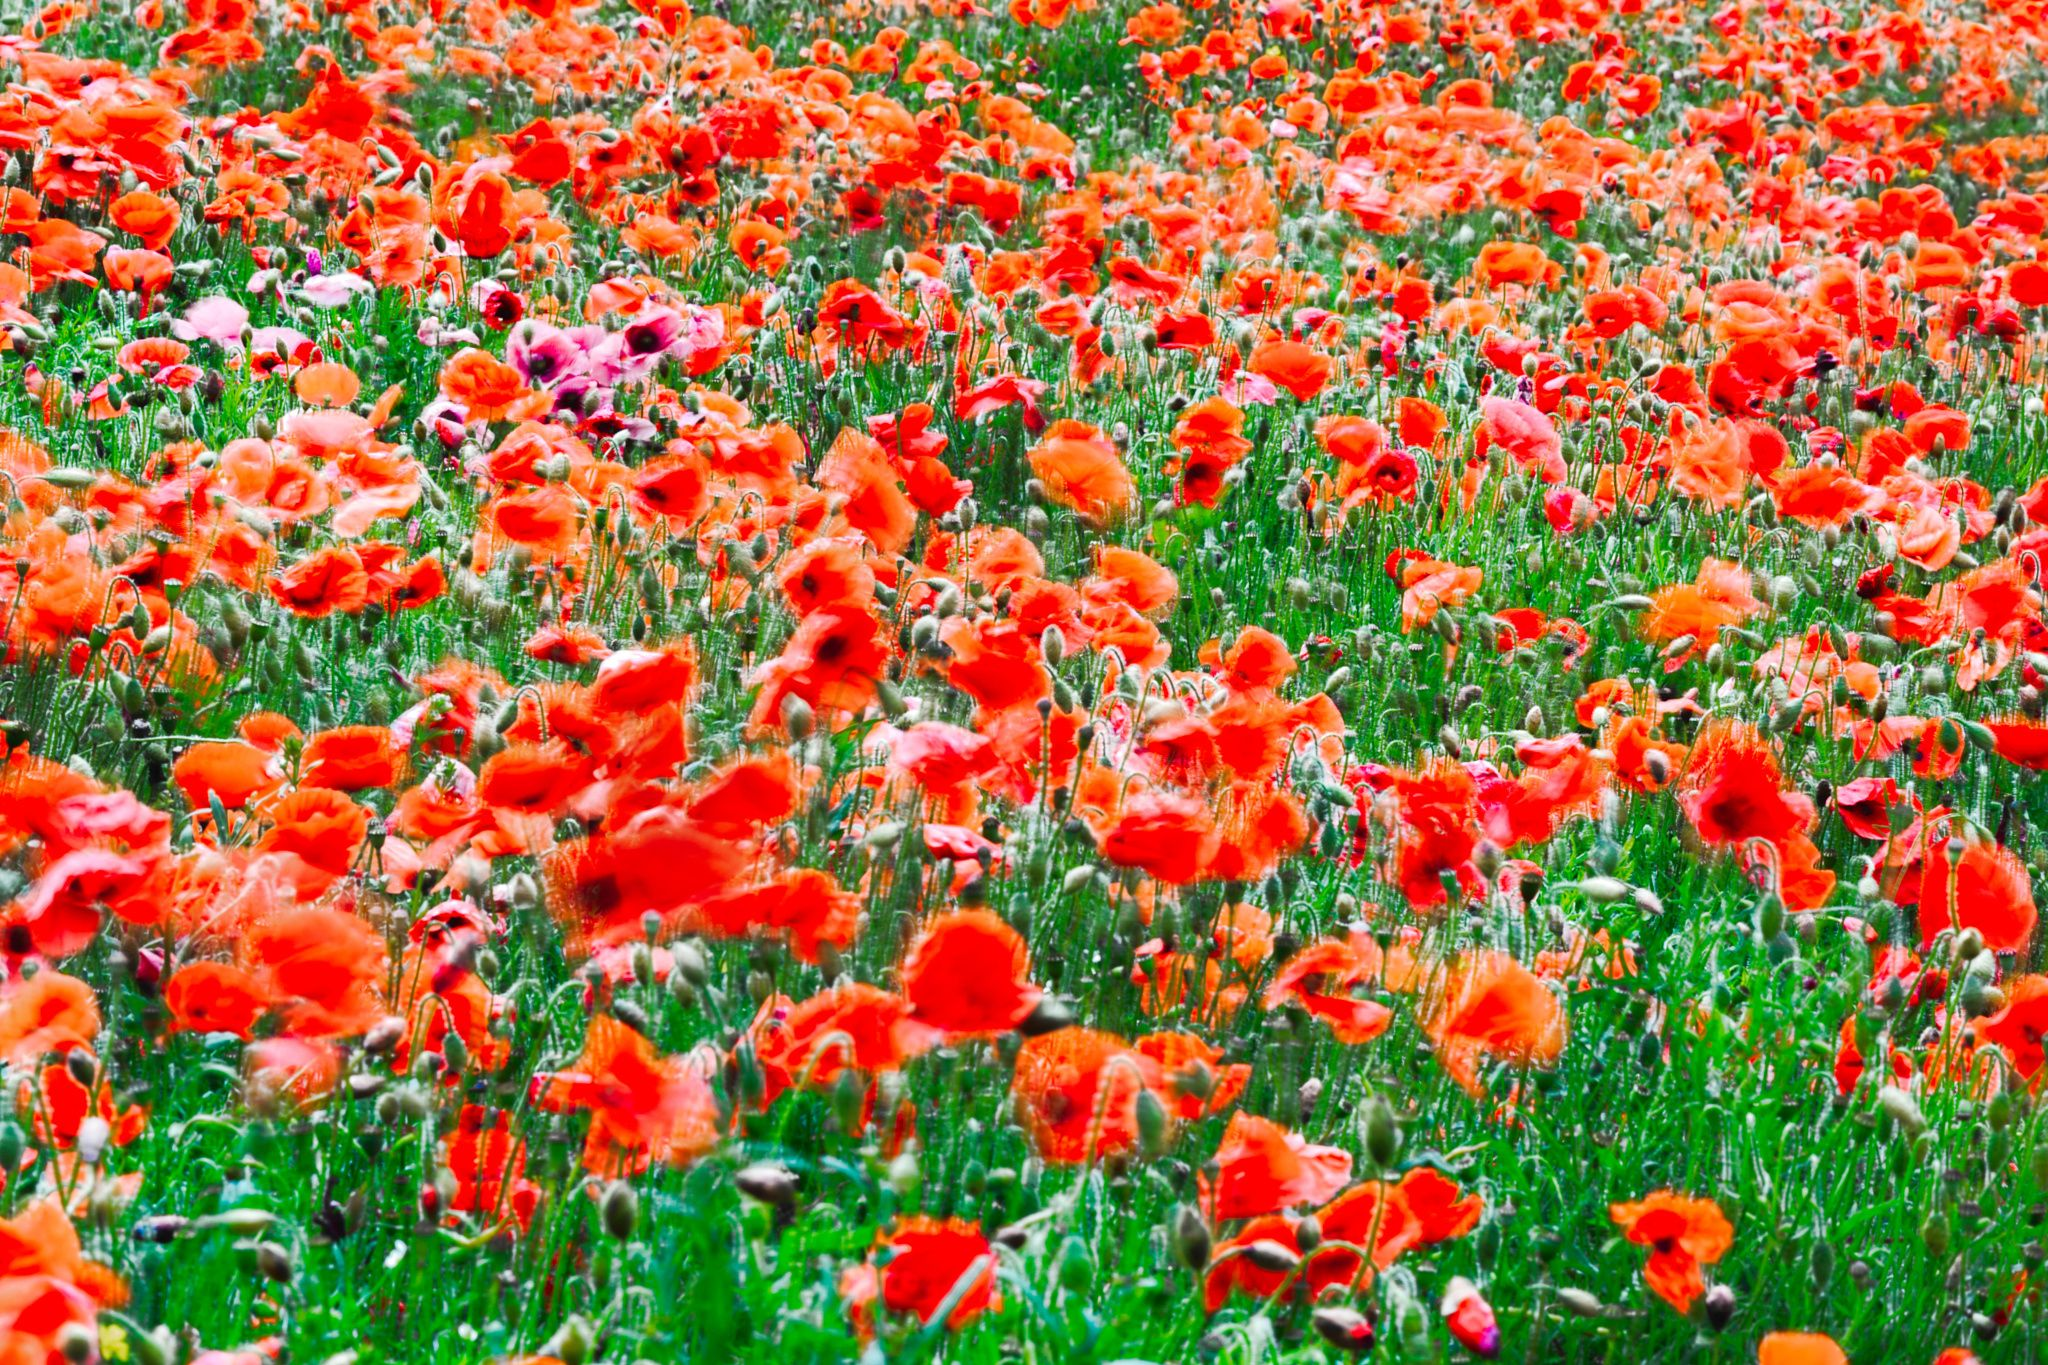 Fotografia Field of Poppies in Sussex de Phil Bird LRPS CPAGB na 500px